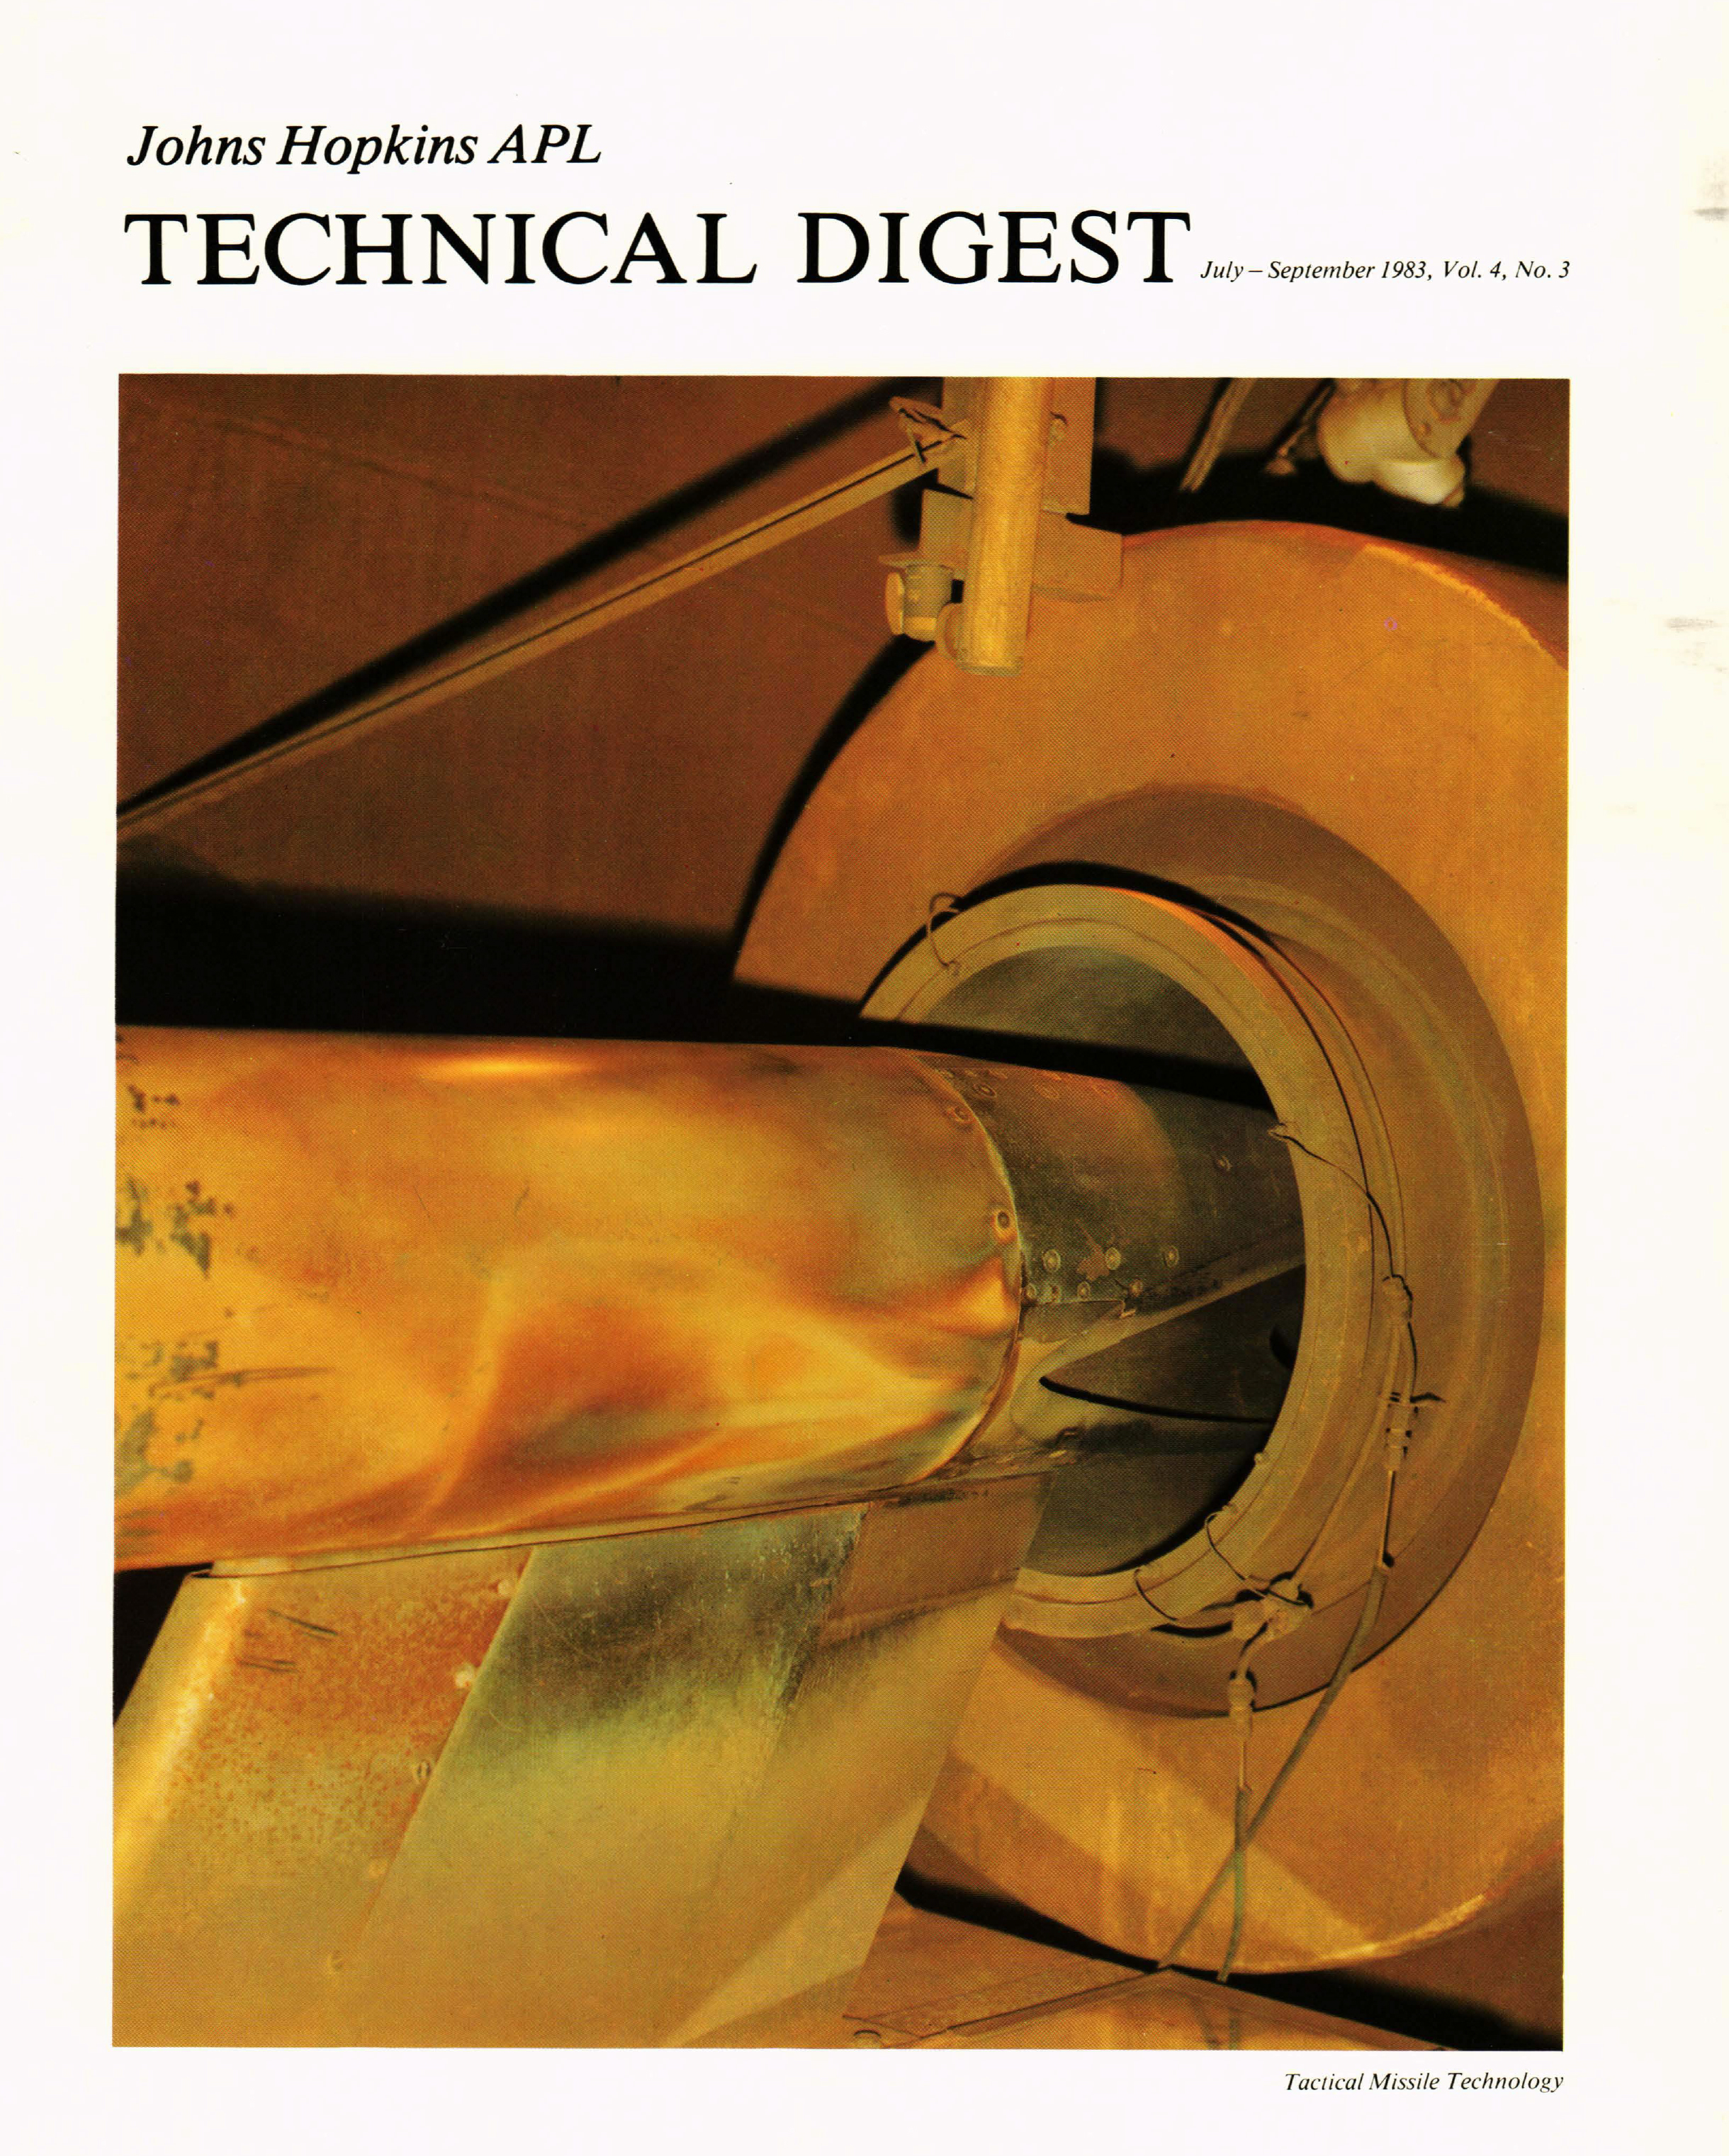 Tech Digest Vol.4 Num.3 Cover